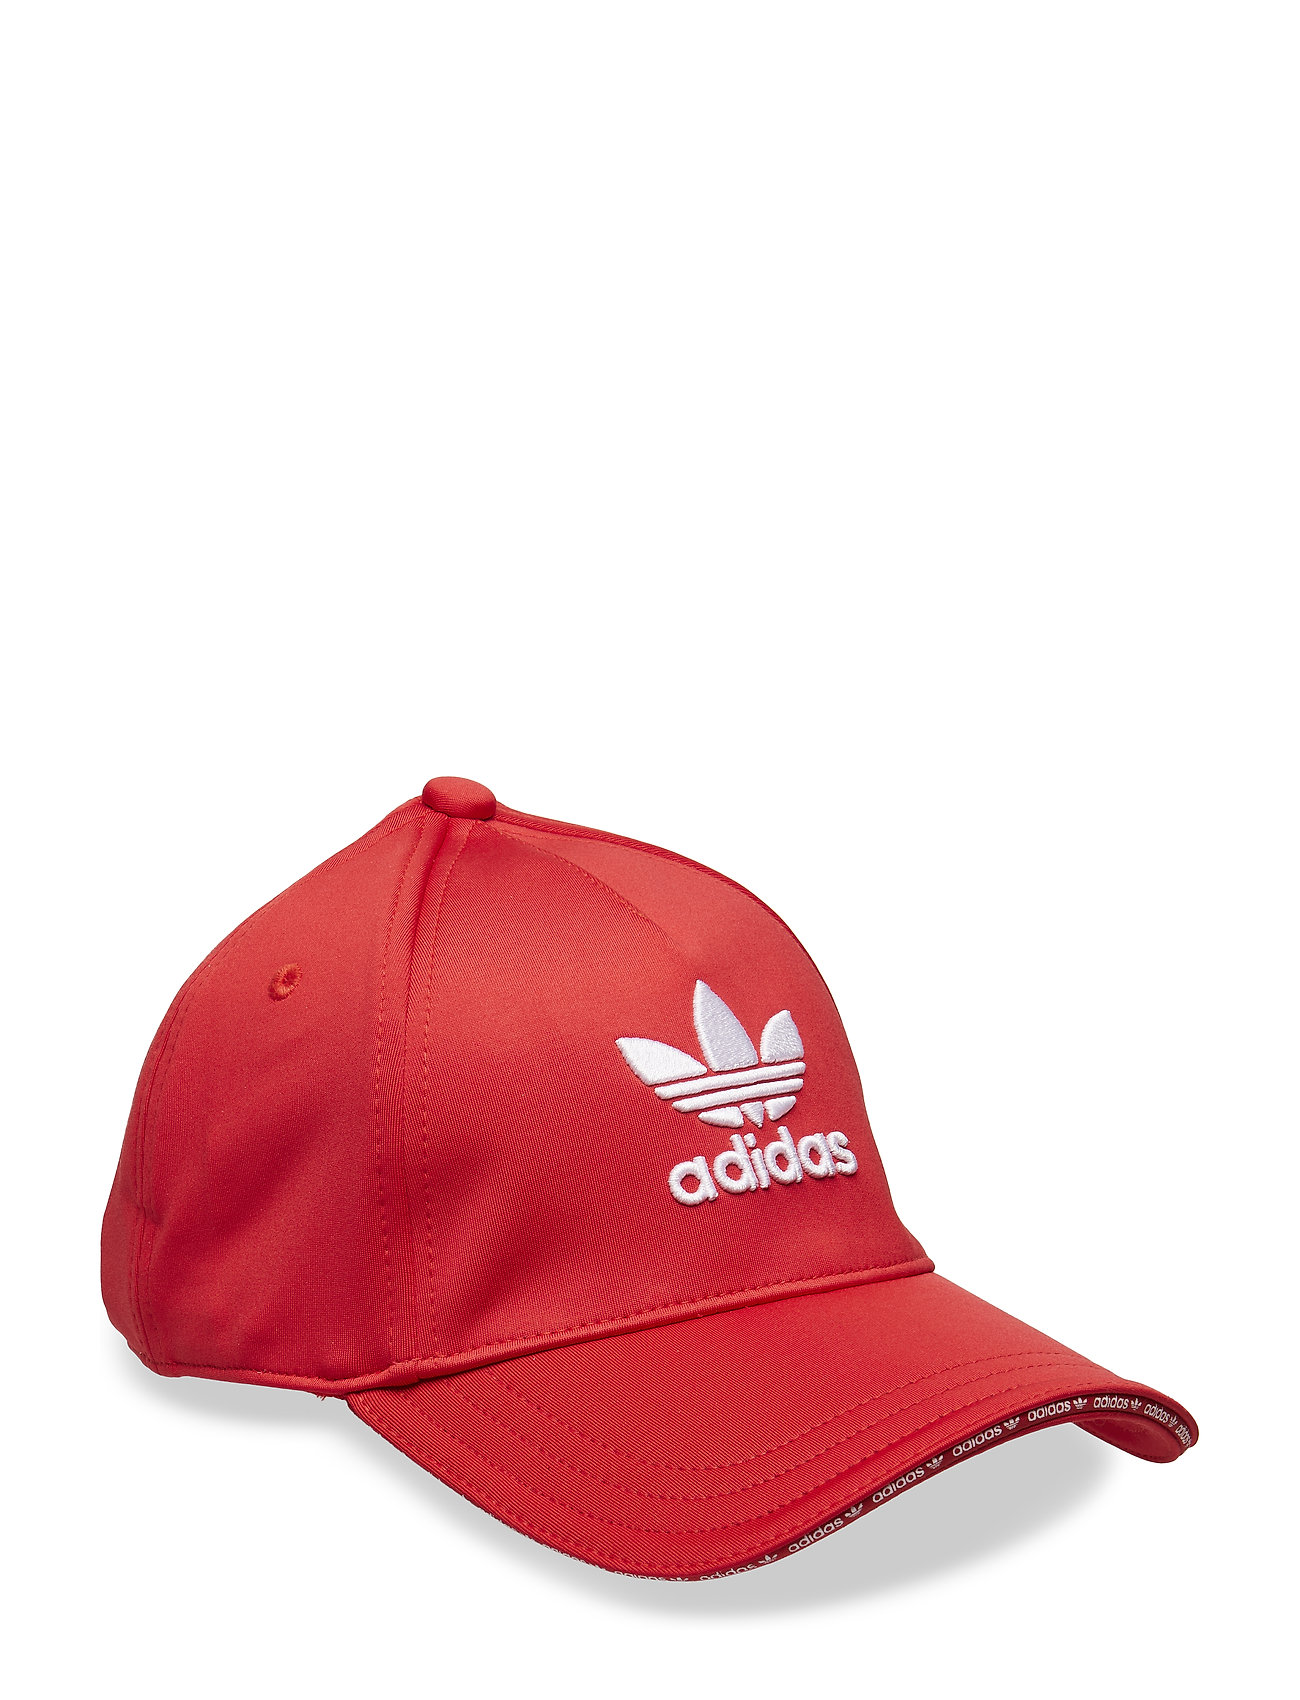 0f63c8fb adidas Originals Cap (Red/white), (13 €) | Large selection of outlet ...